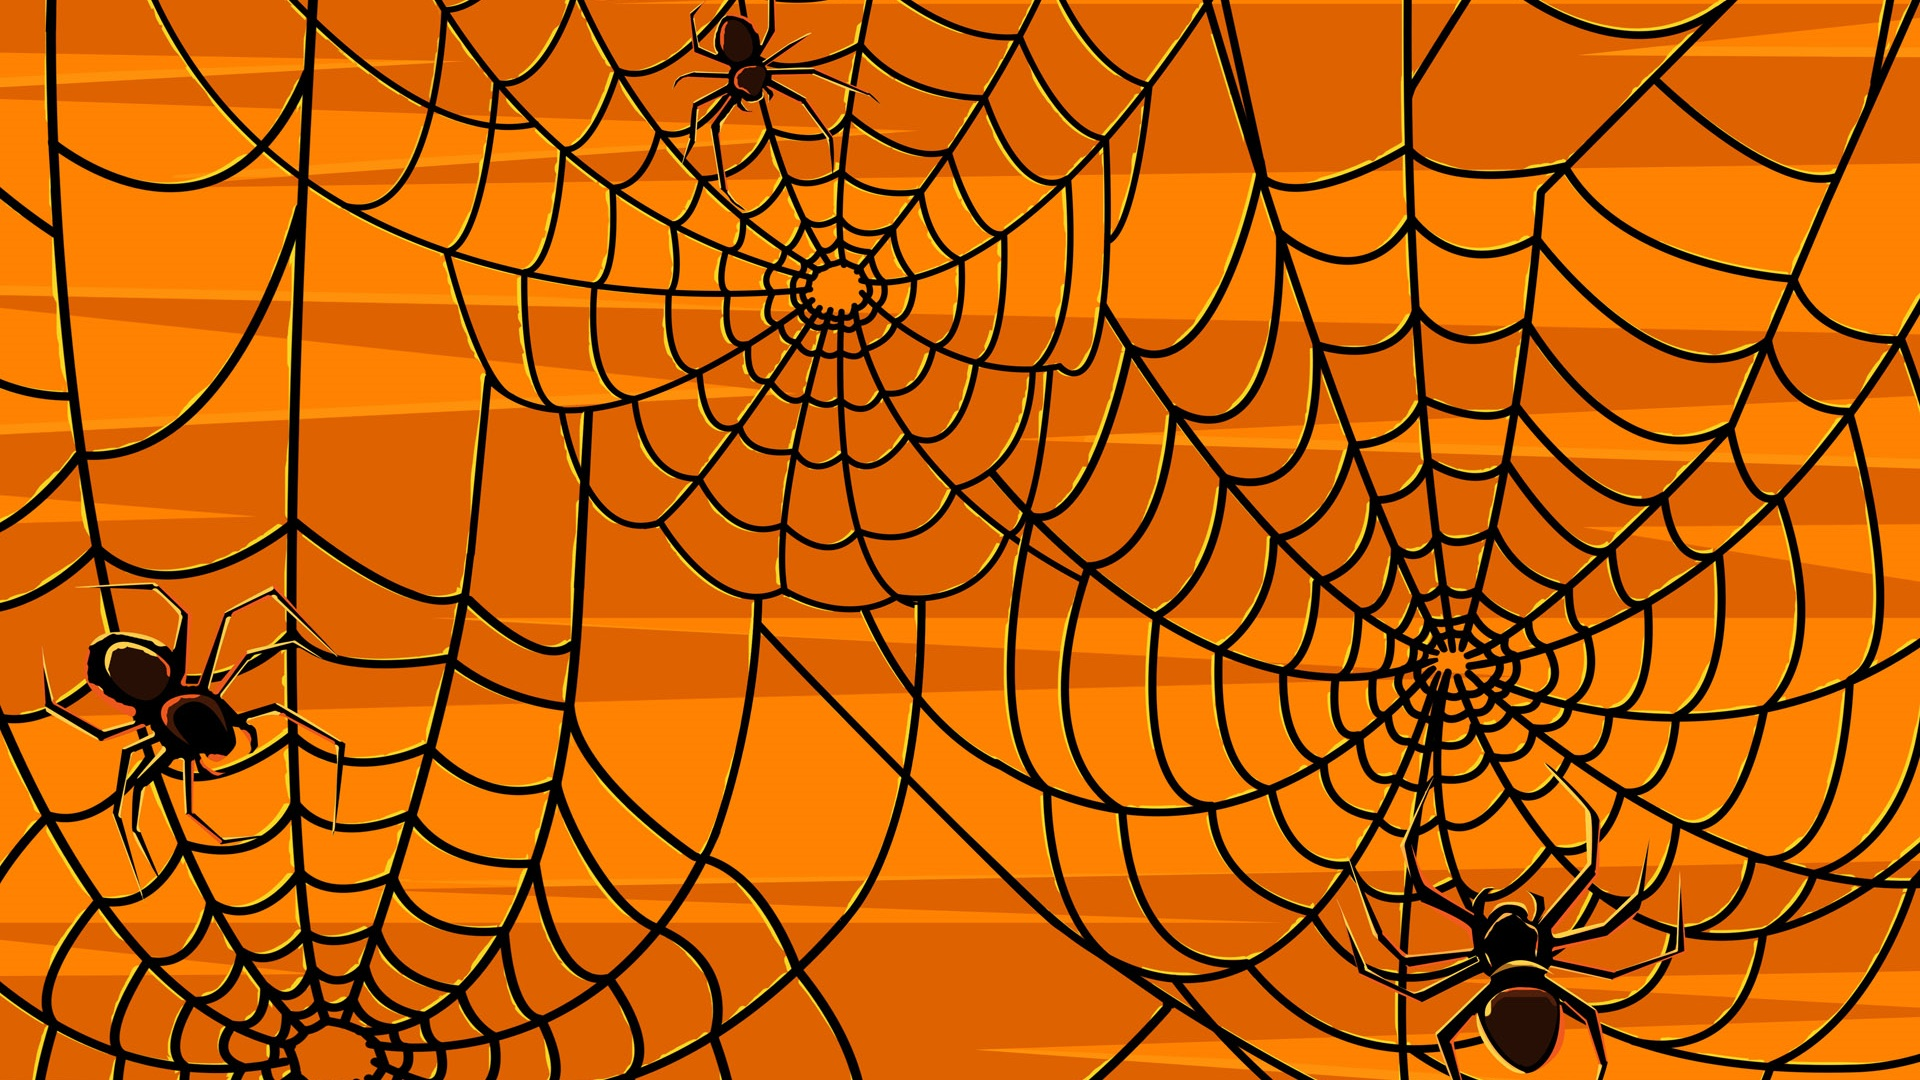 Two Simple Ways To Make Your Halloween Coverage Stand Out